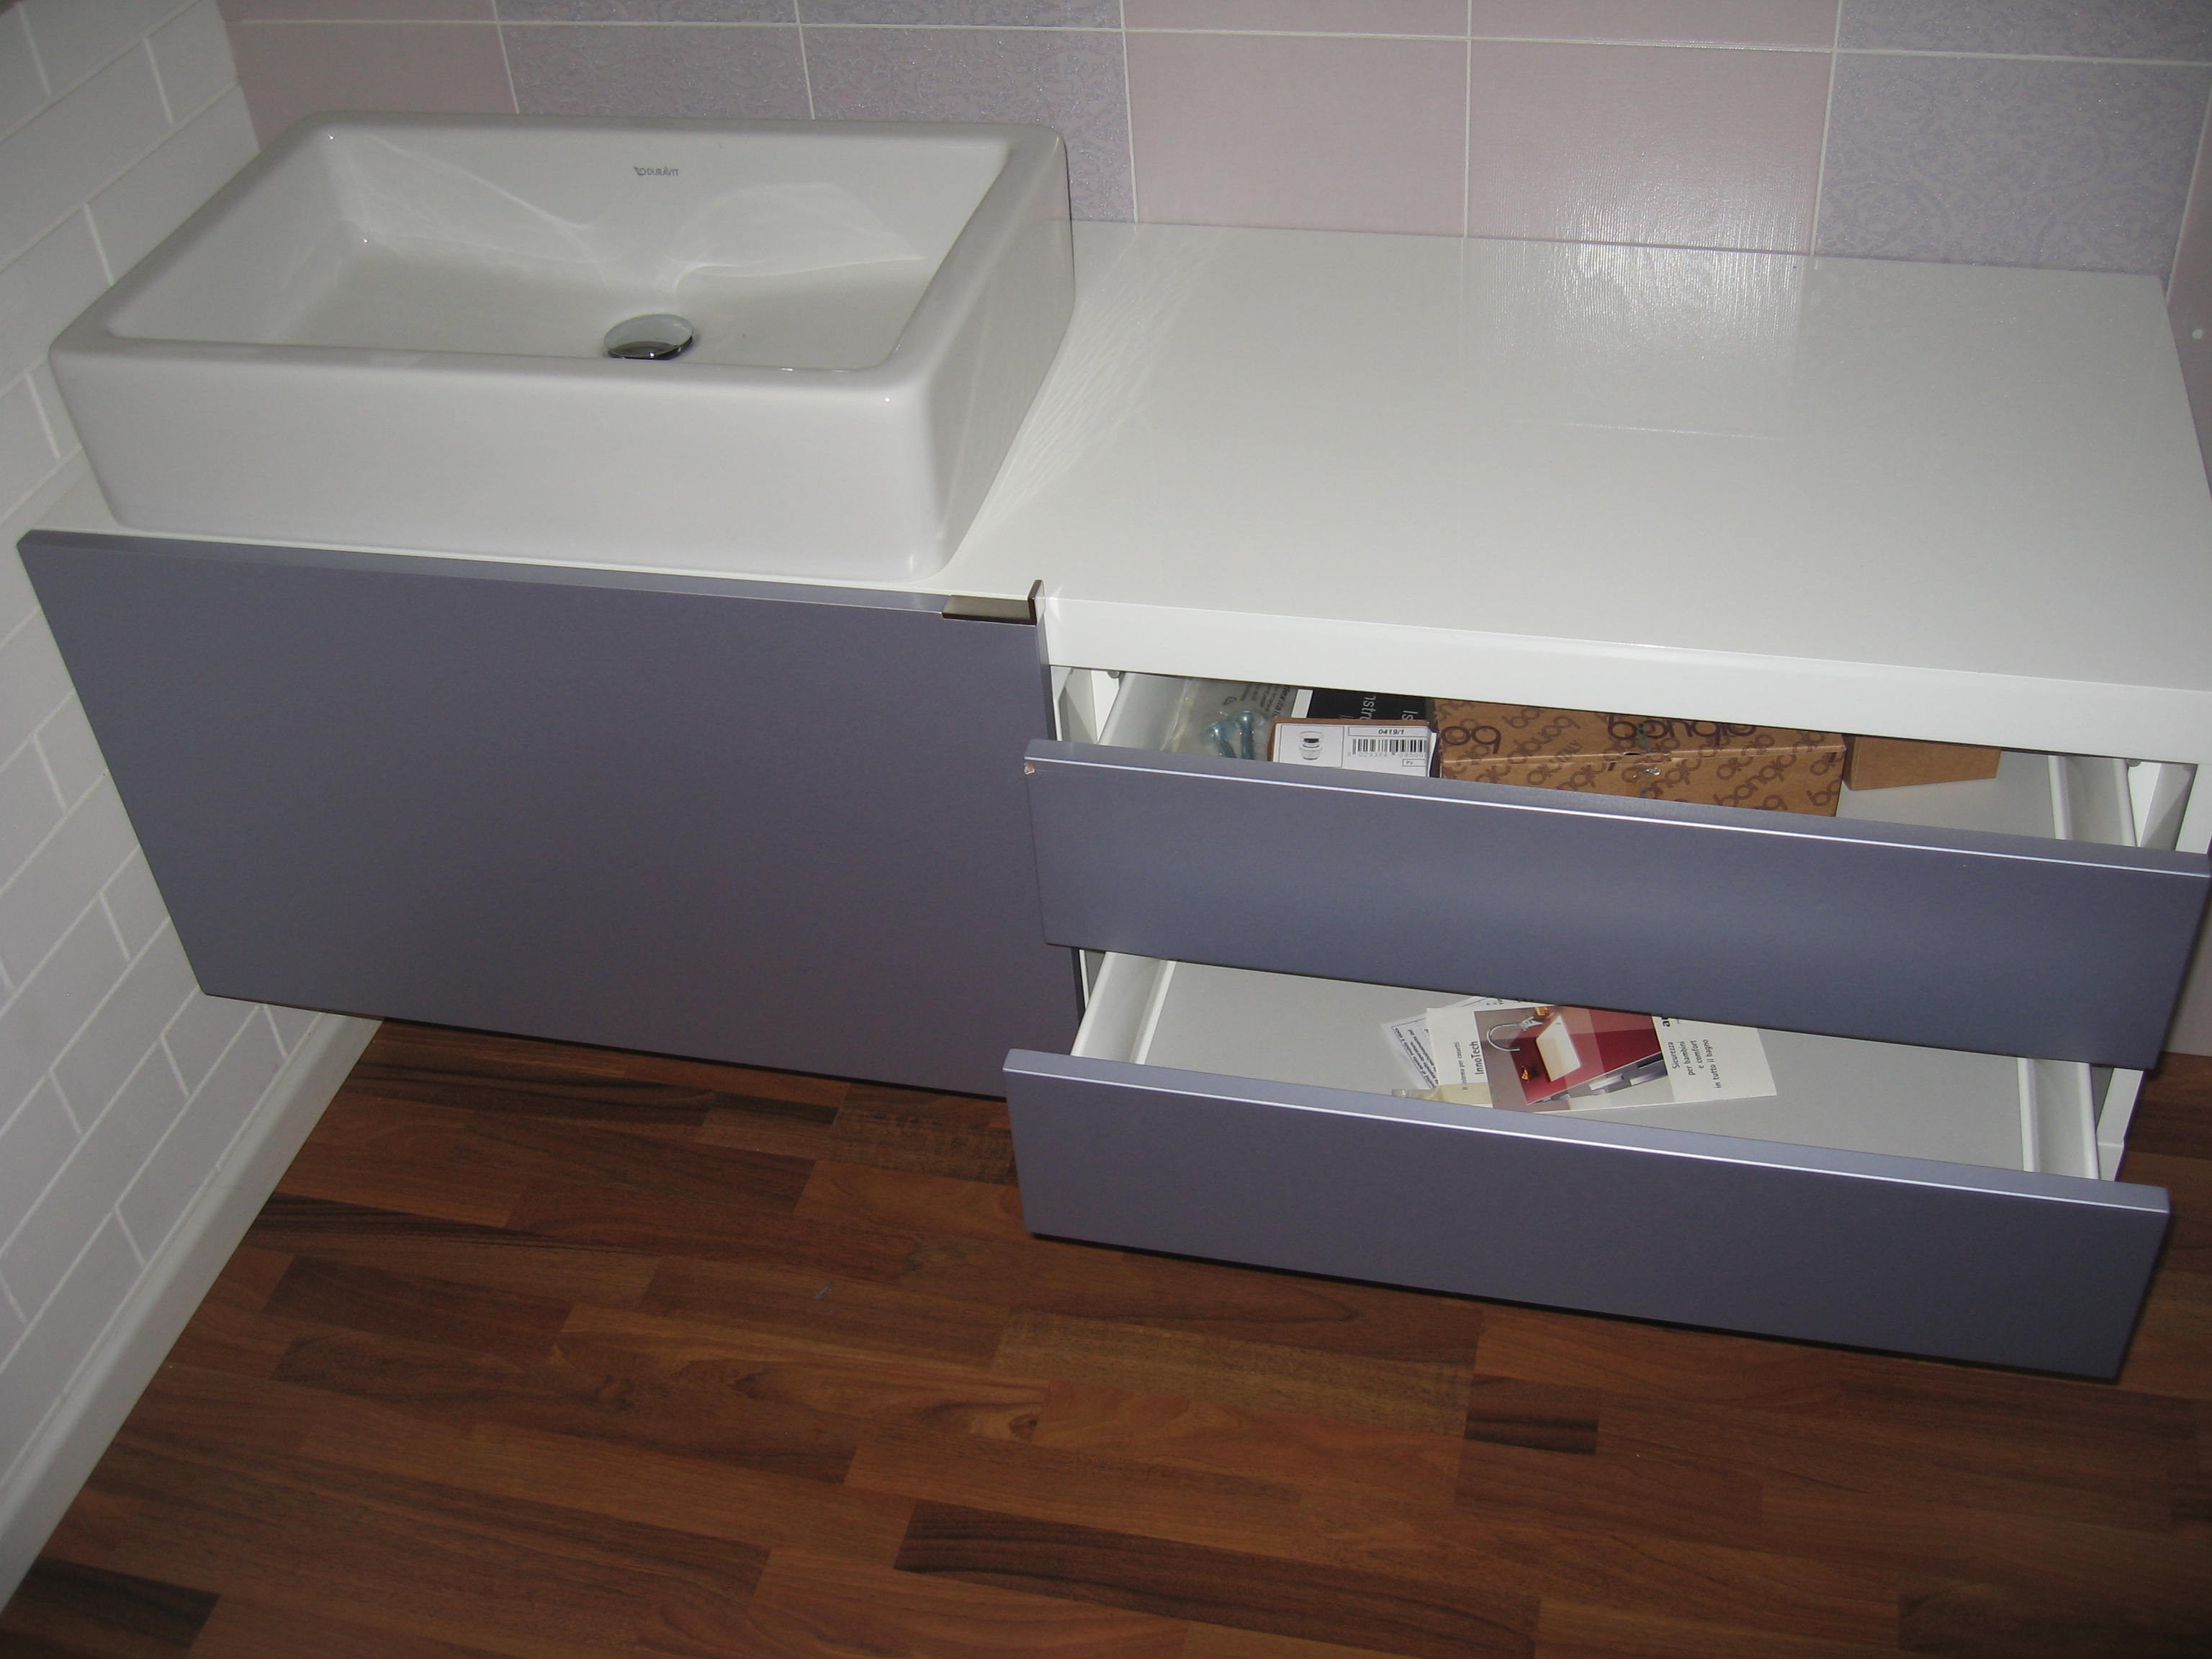 Mobile Bagno Viola ~ avienix.com for .